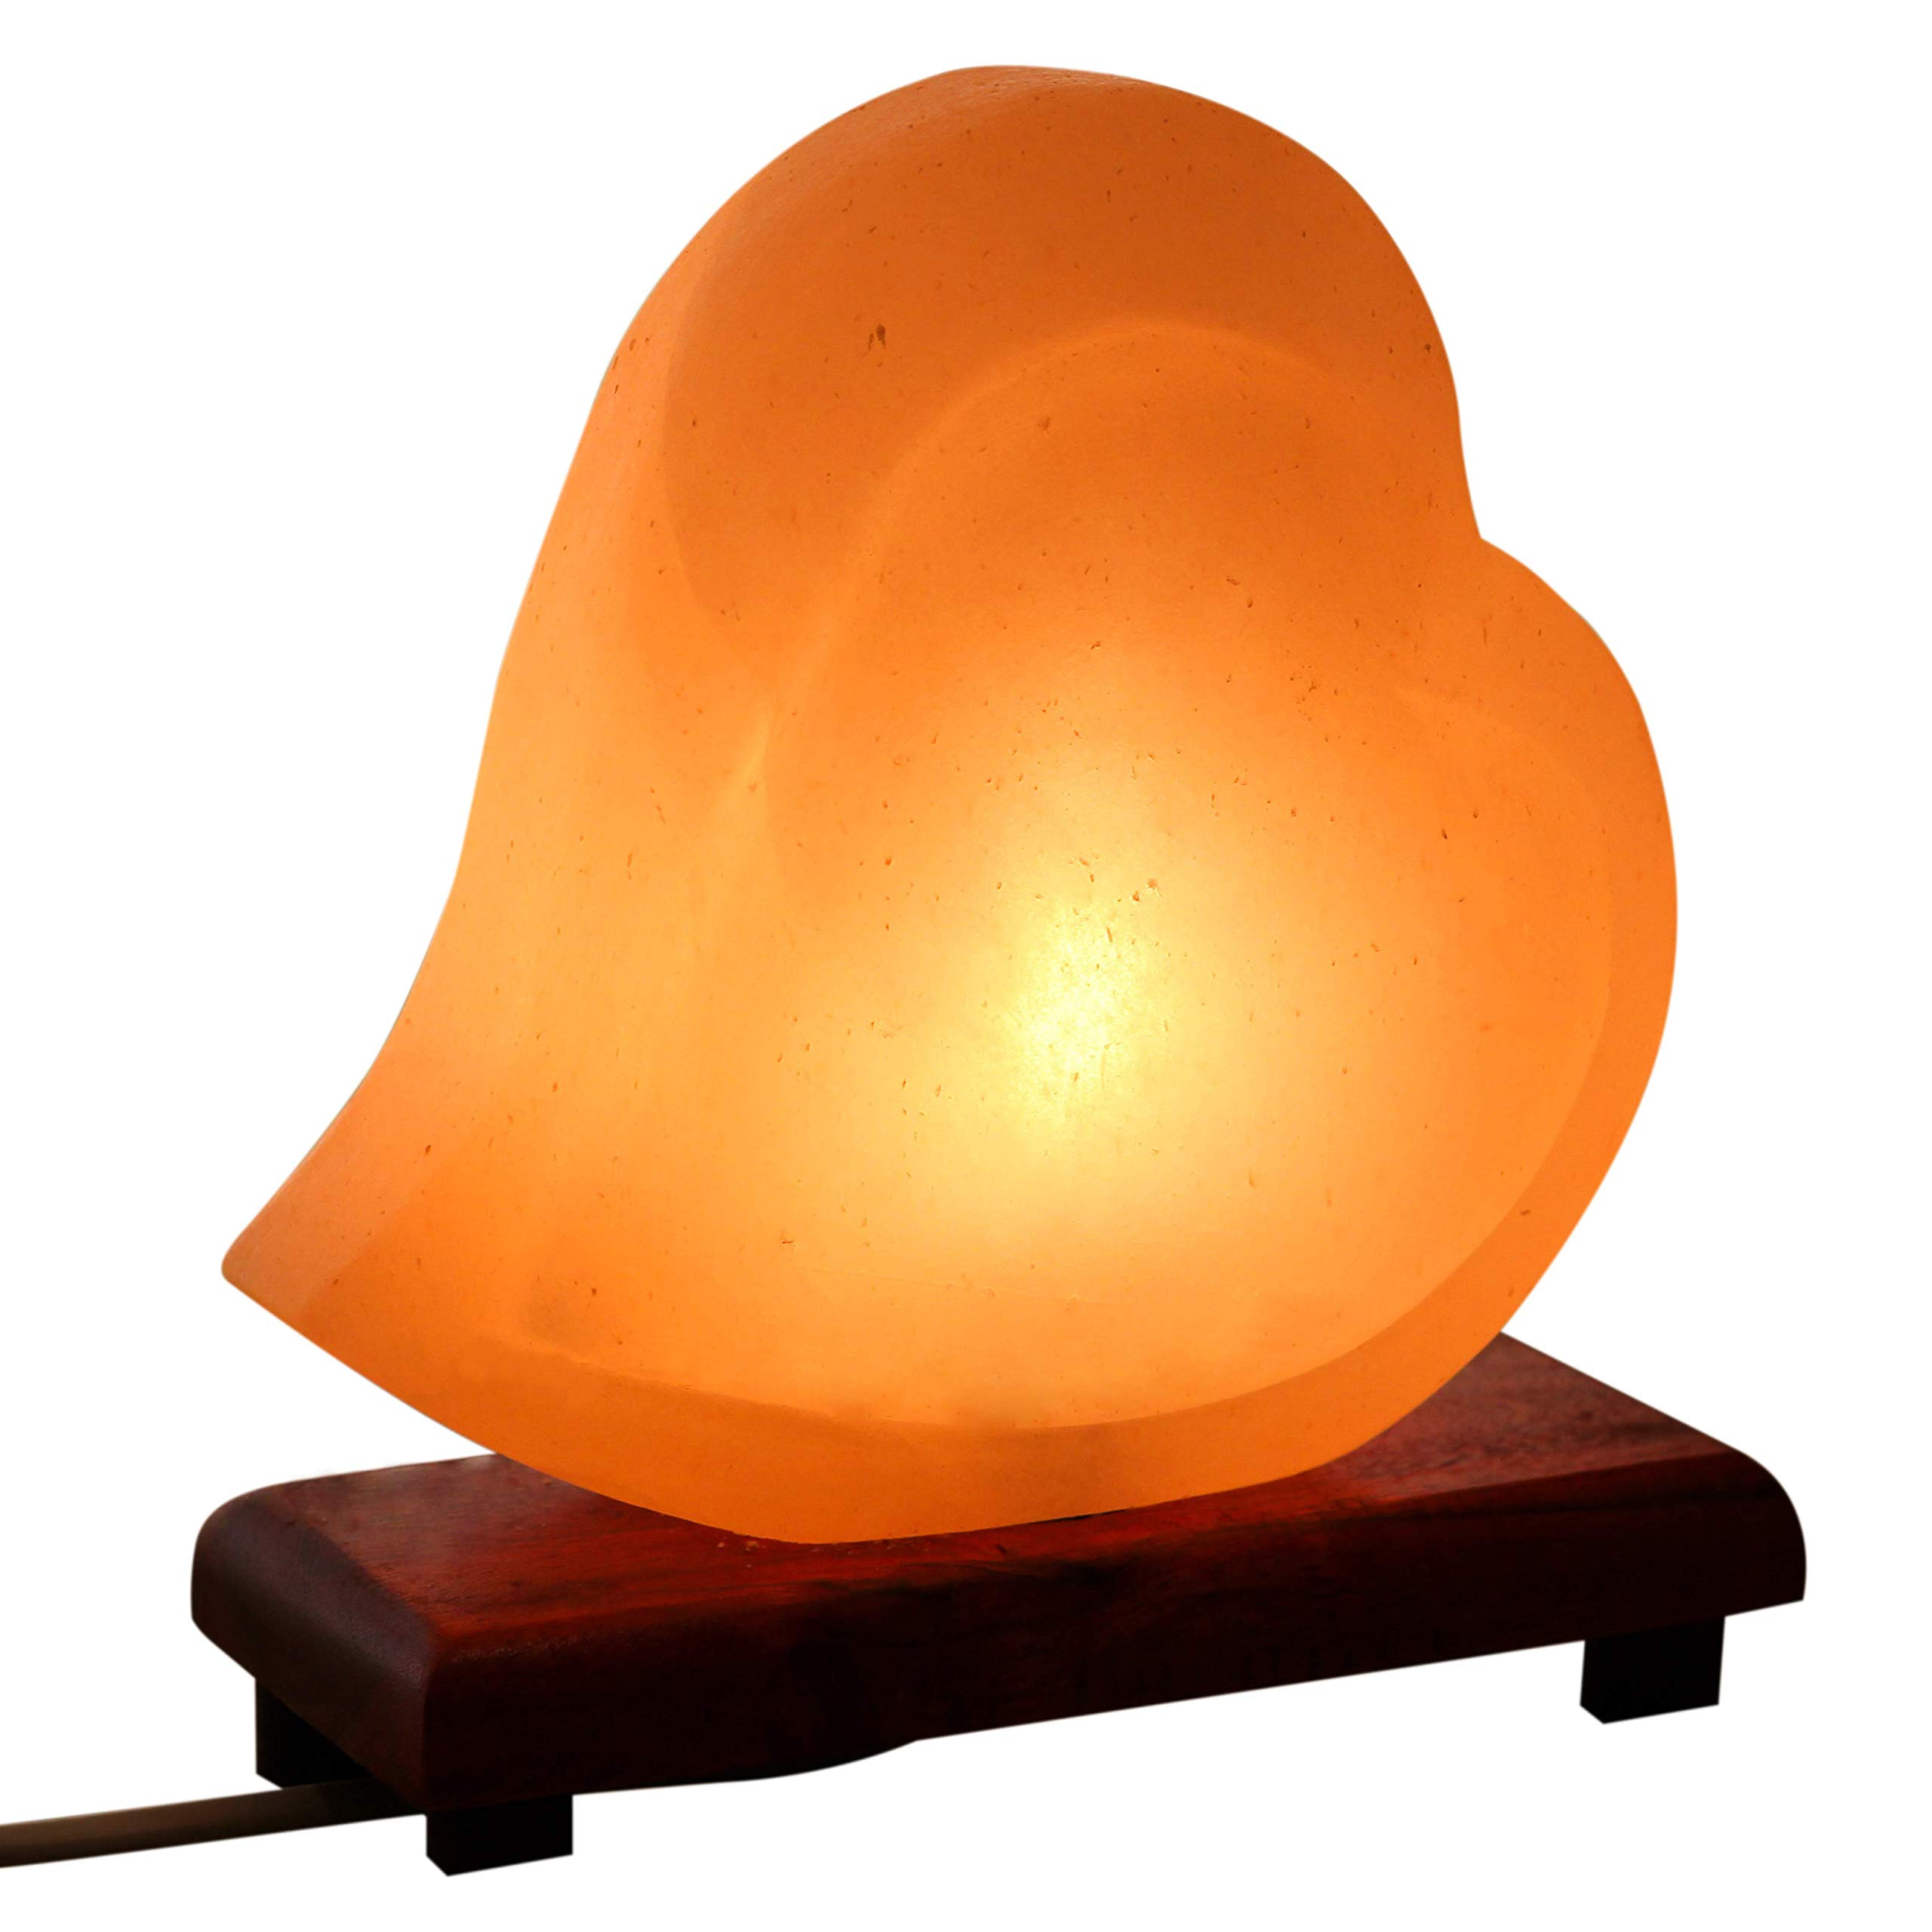 Mockins Natural Himalayan Salt Double Heart Shaped Lamp The Salt Lamp is Hand Carved with a Wooden Base and Dimmer - Best Mother's Day Gift … … … … … by Mockins (Image #1)